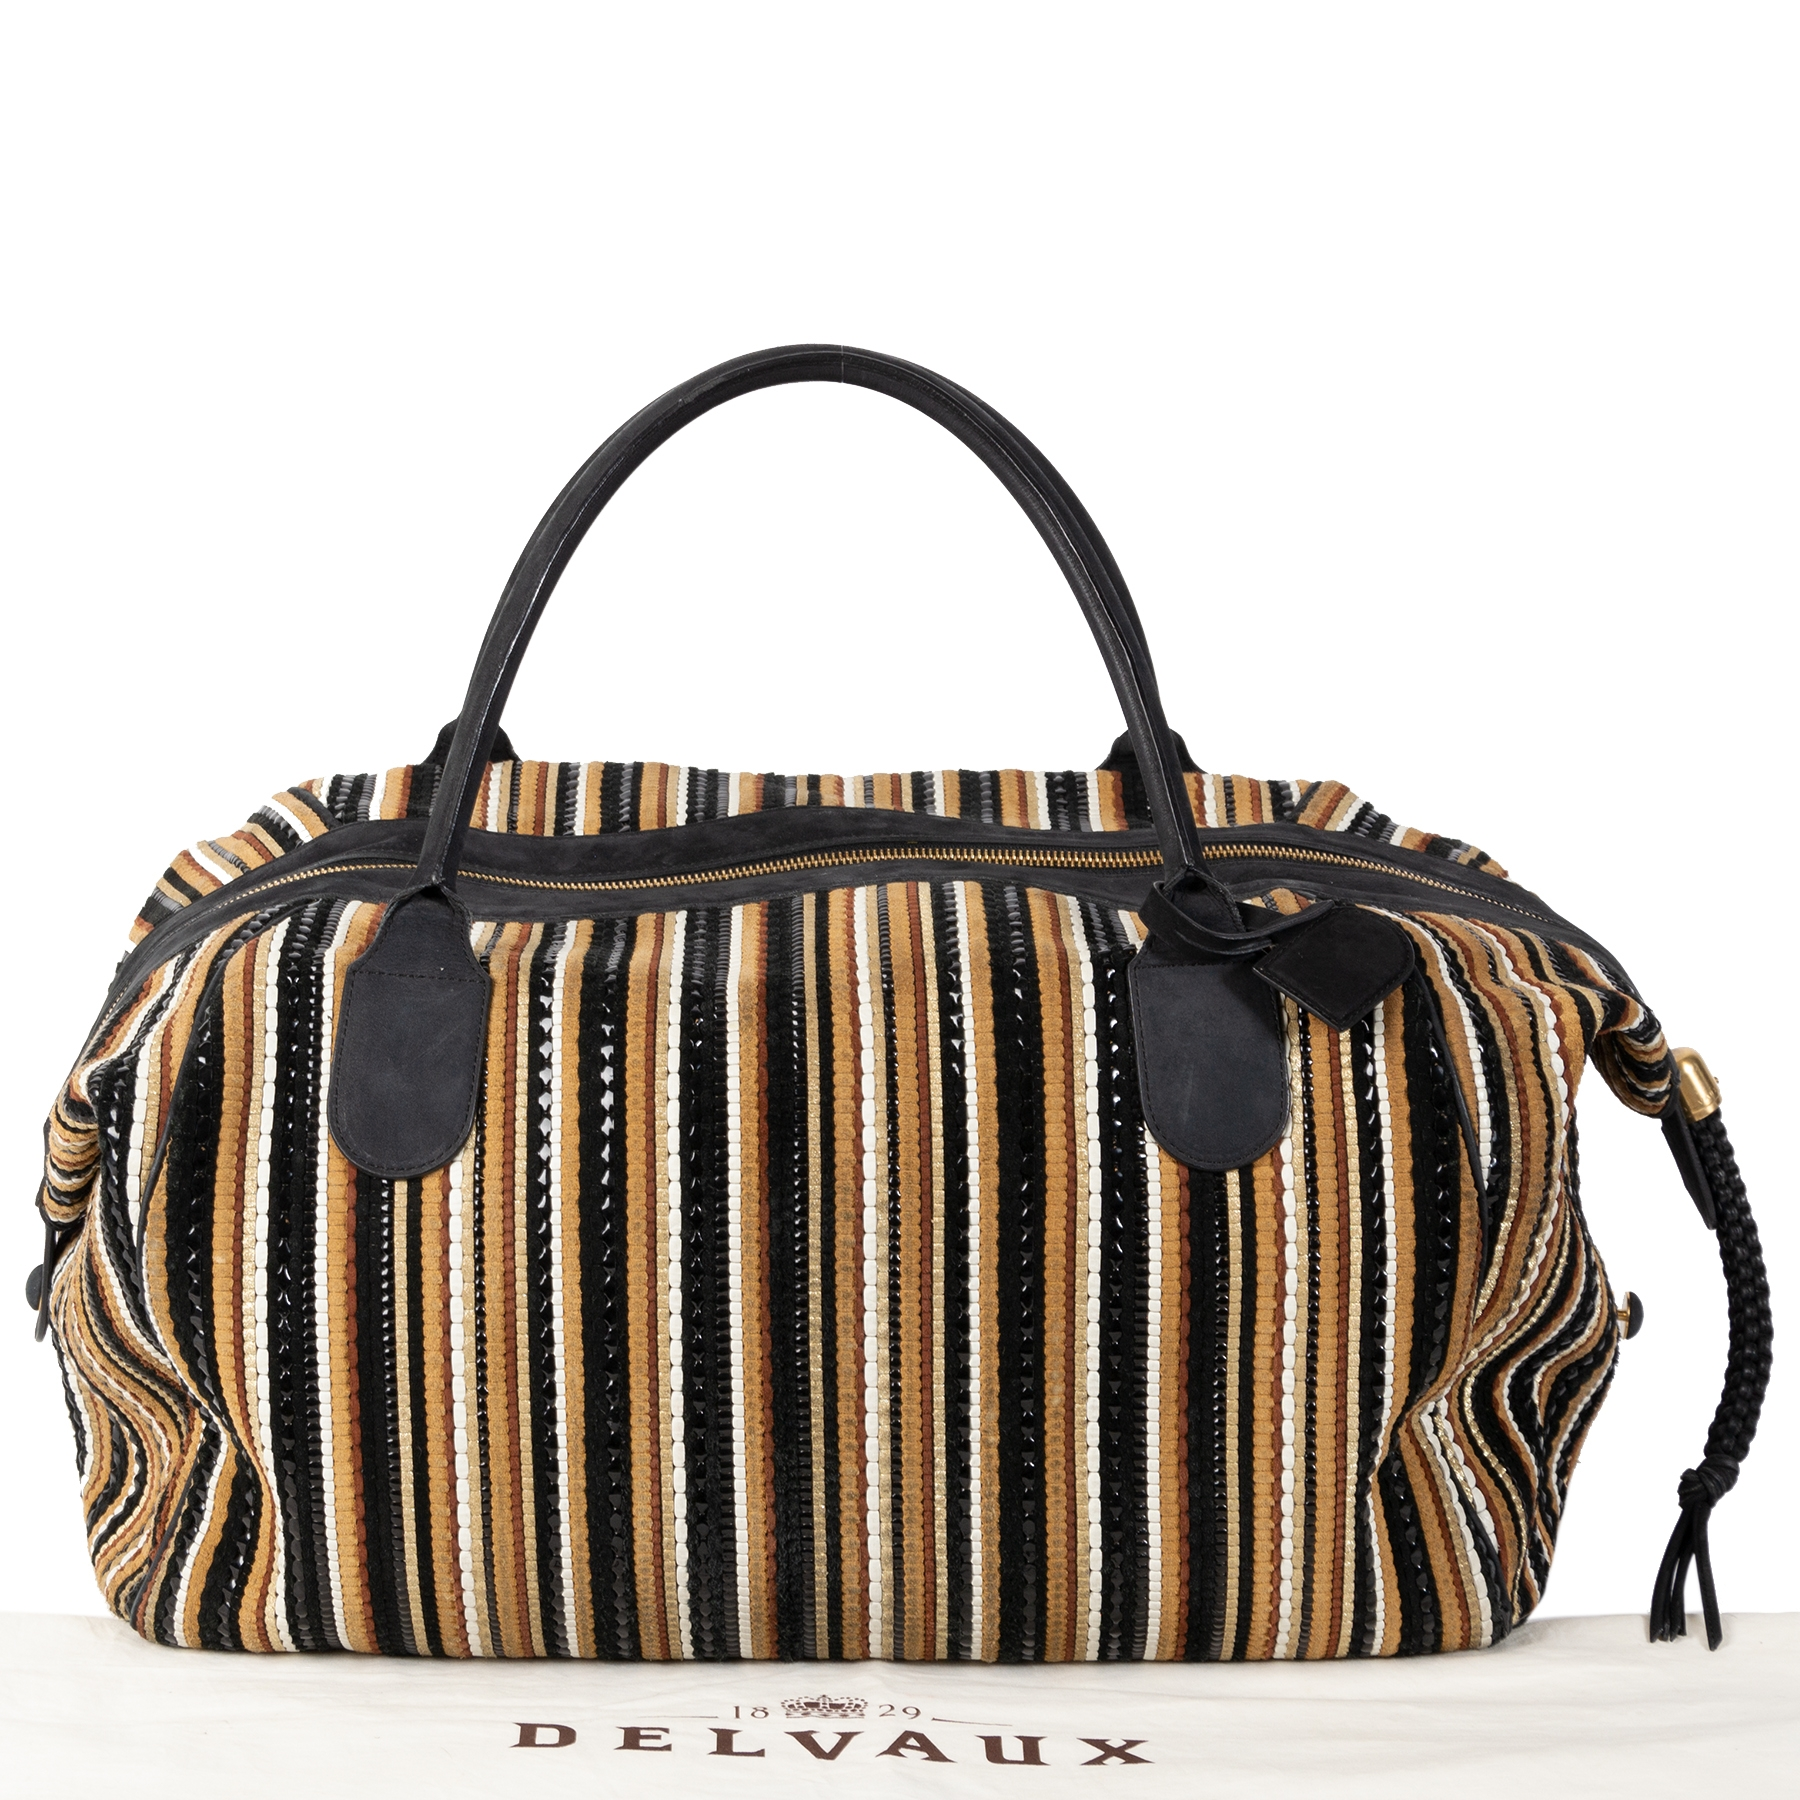 Delvaux Black & Brown Toile de Cuir Duffel Bag